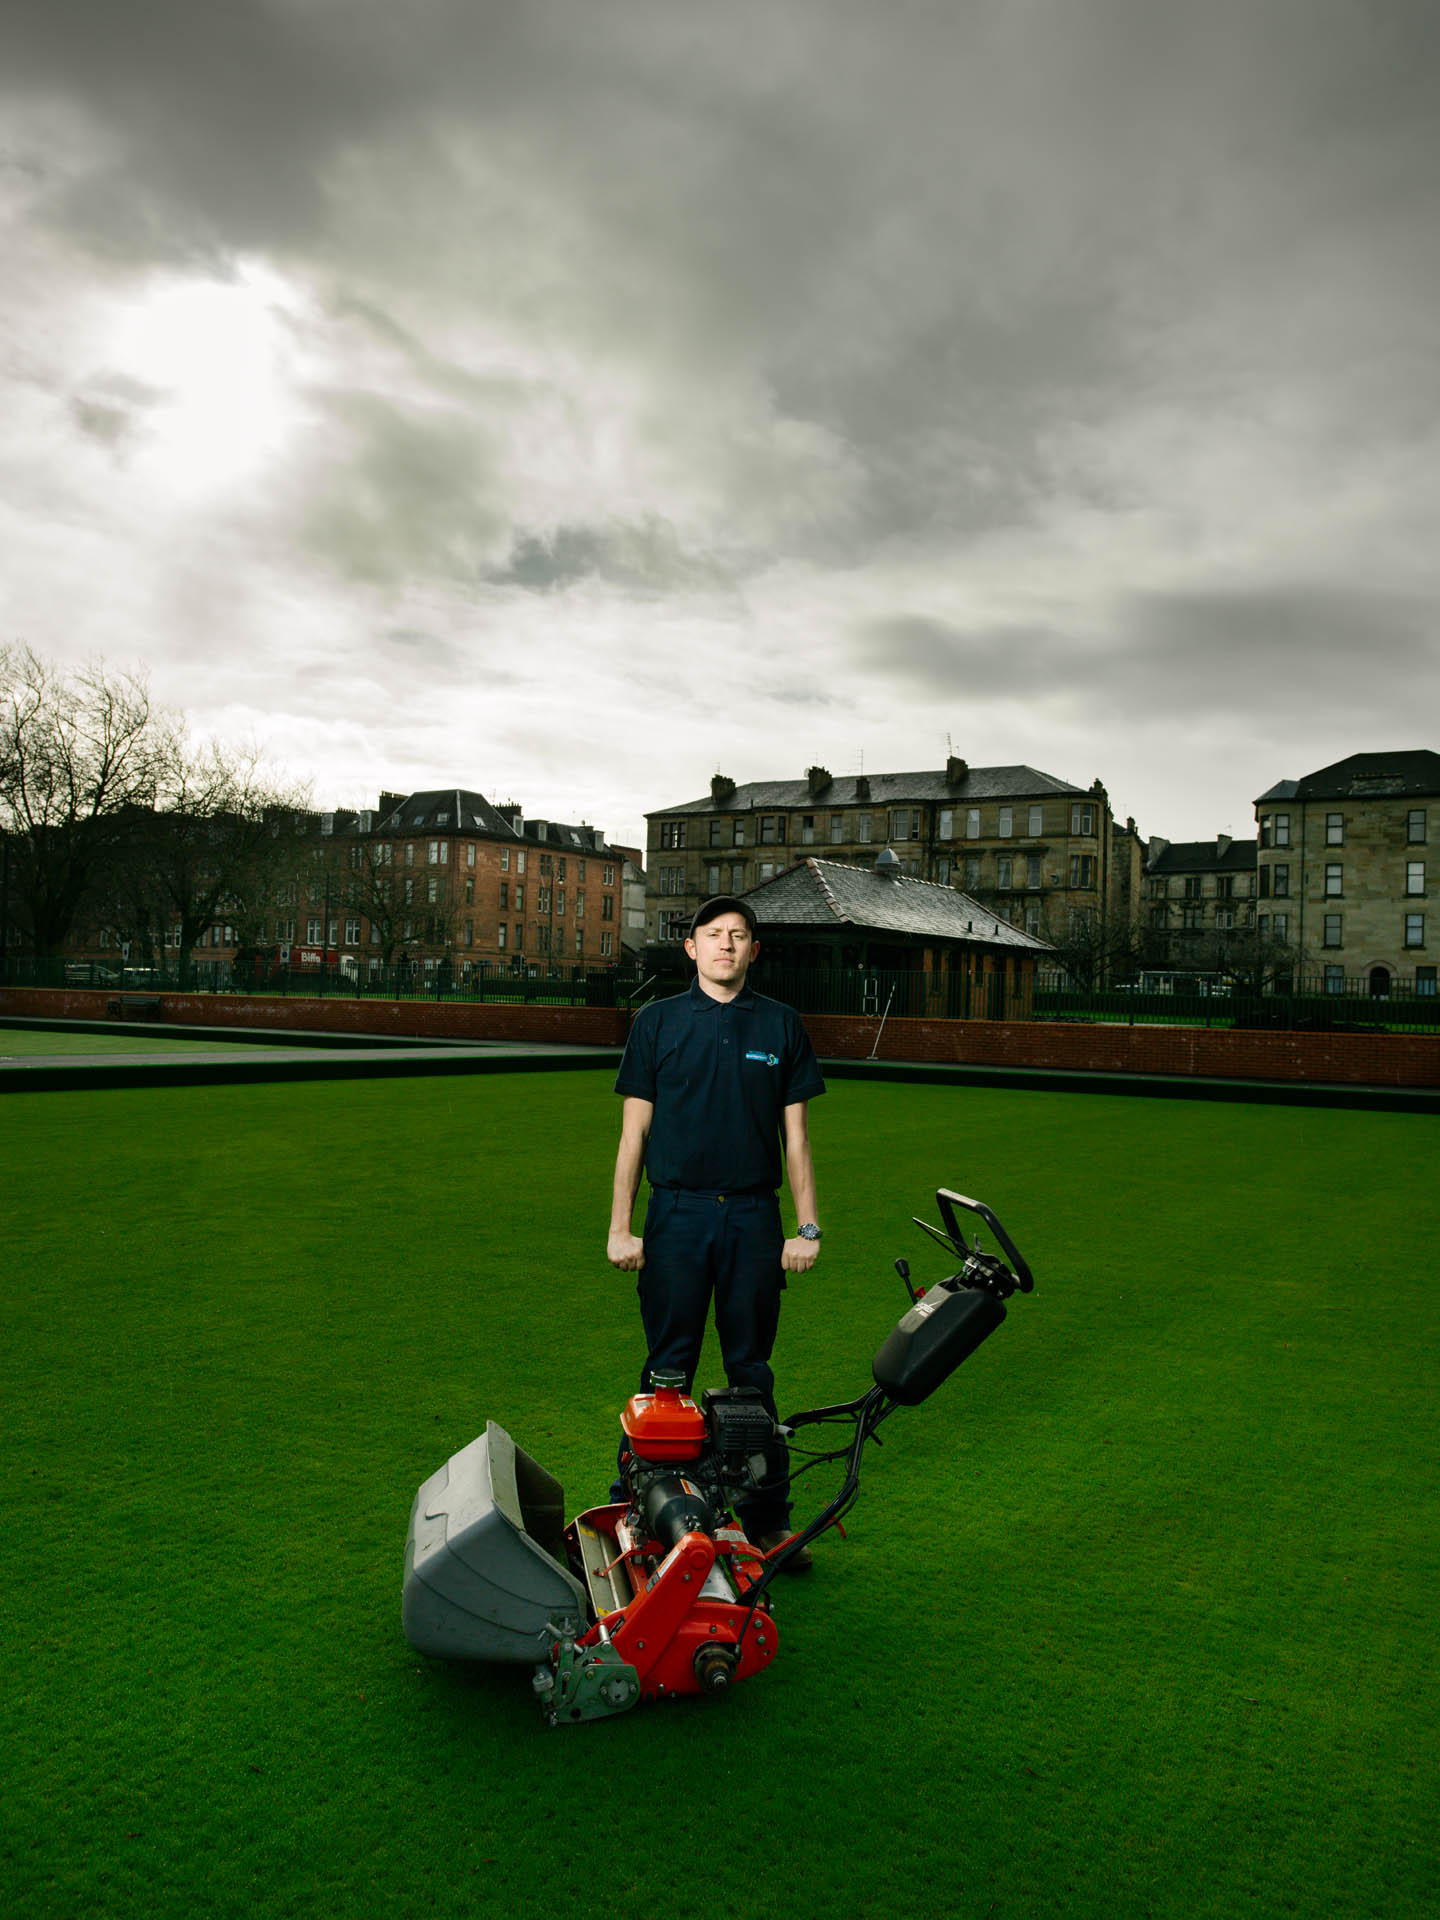 Craig Collins, Green maintenance specialist at the Kelvingrove Bowles Centre, Glasgow. Shot for the GREEN CITY Exhibition at the Lighthouse, Glasgow.